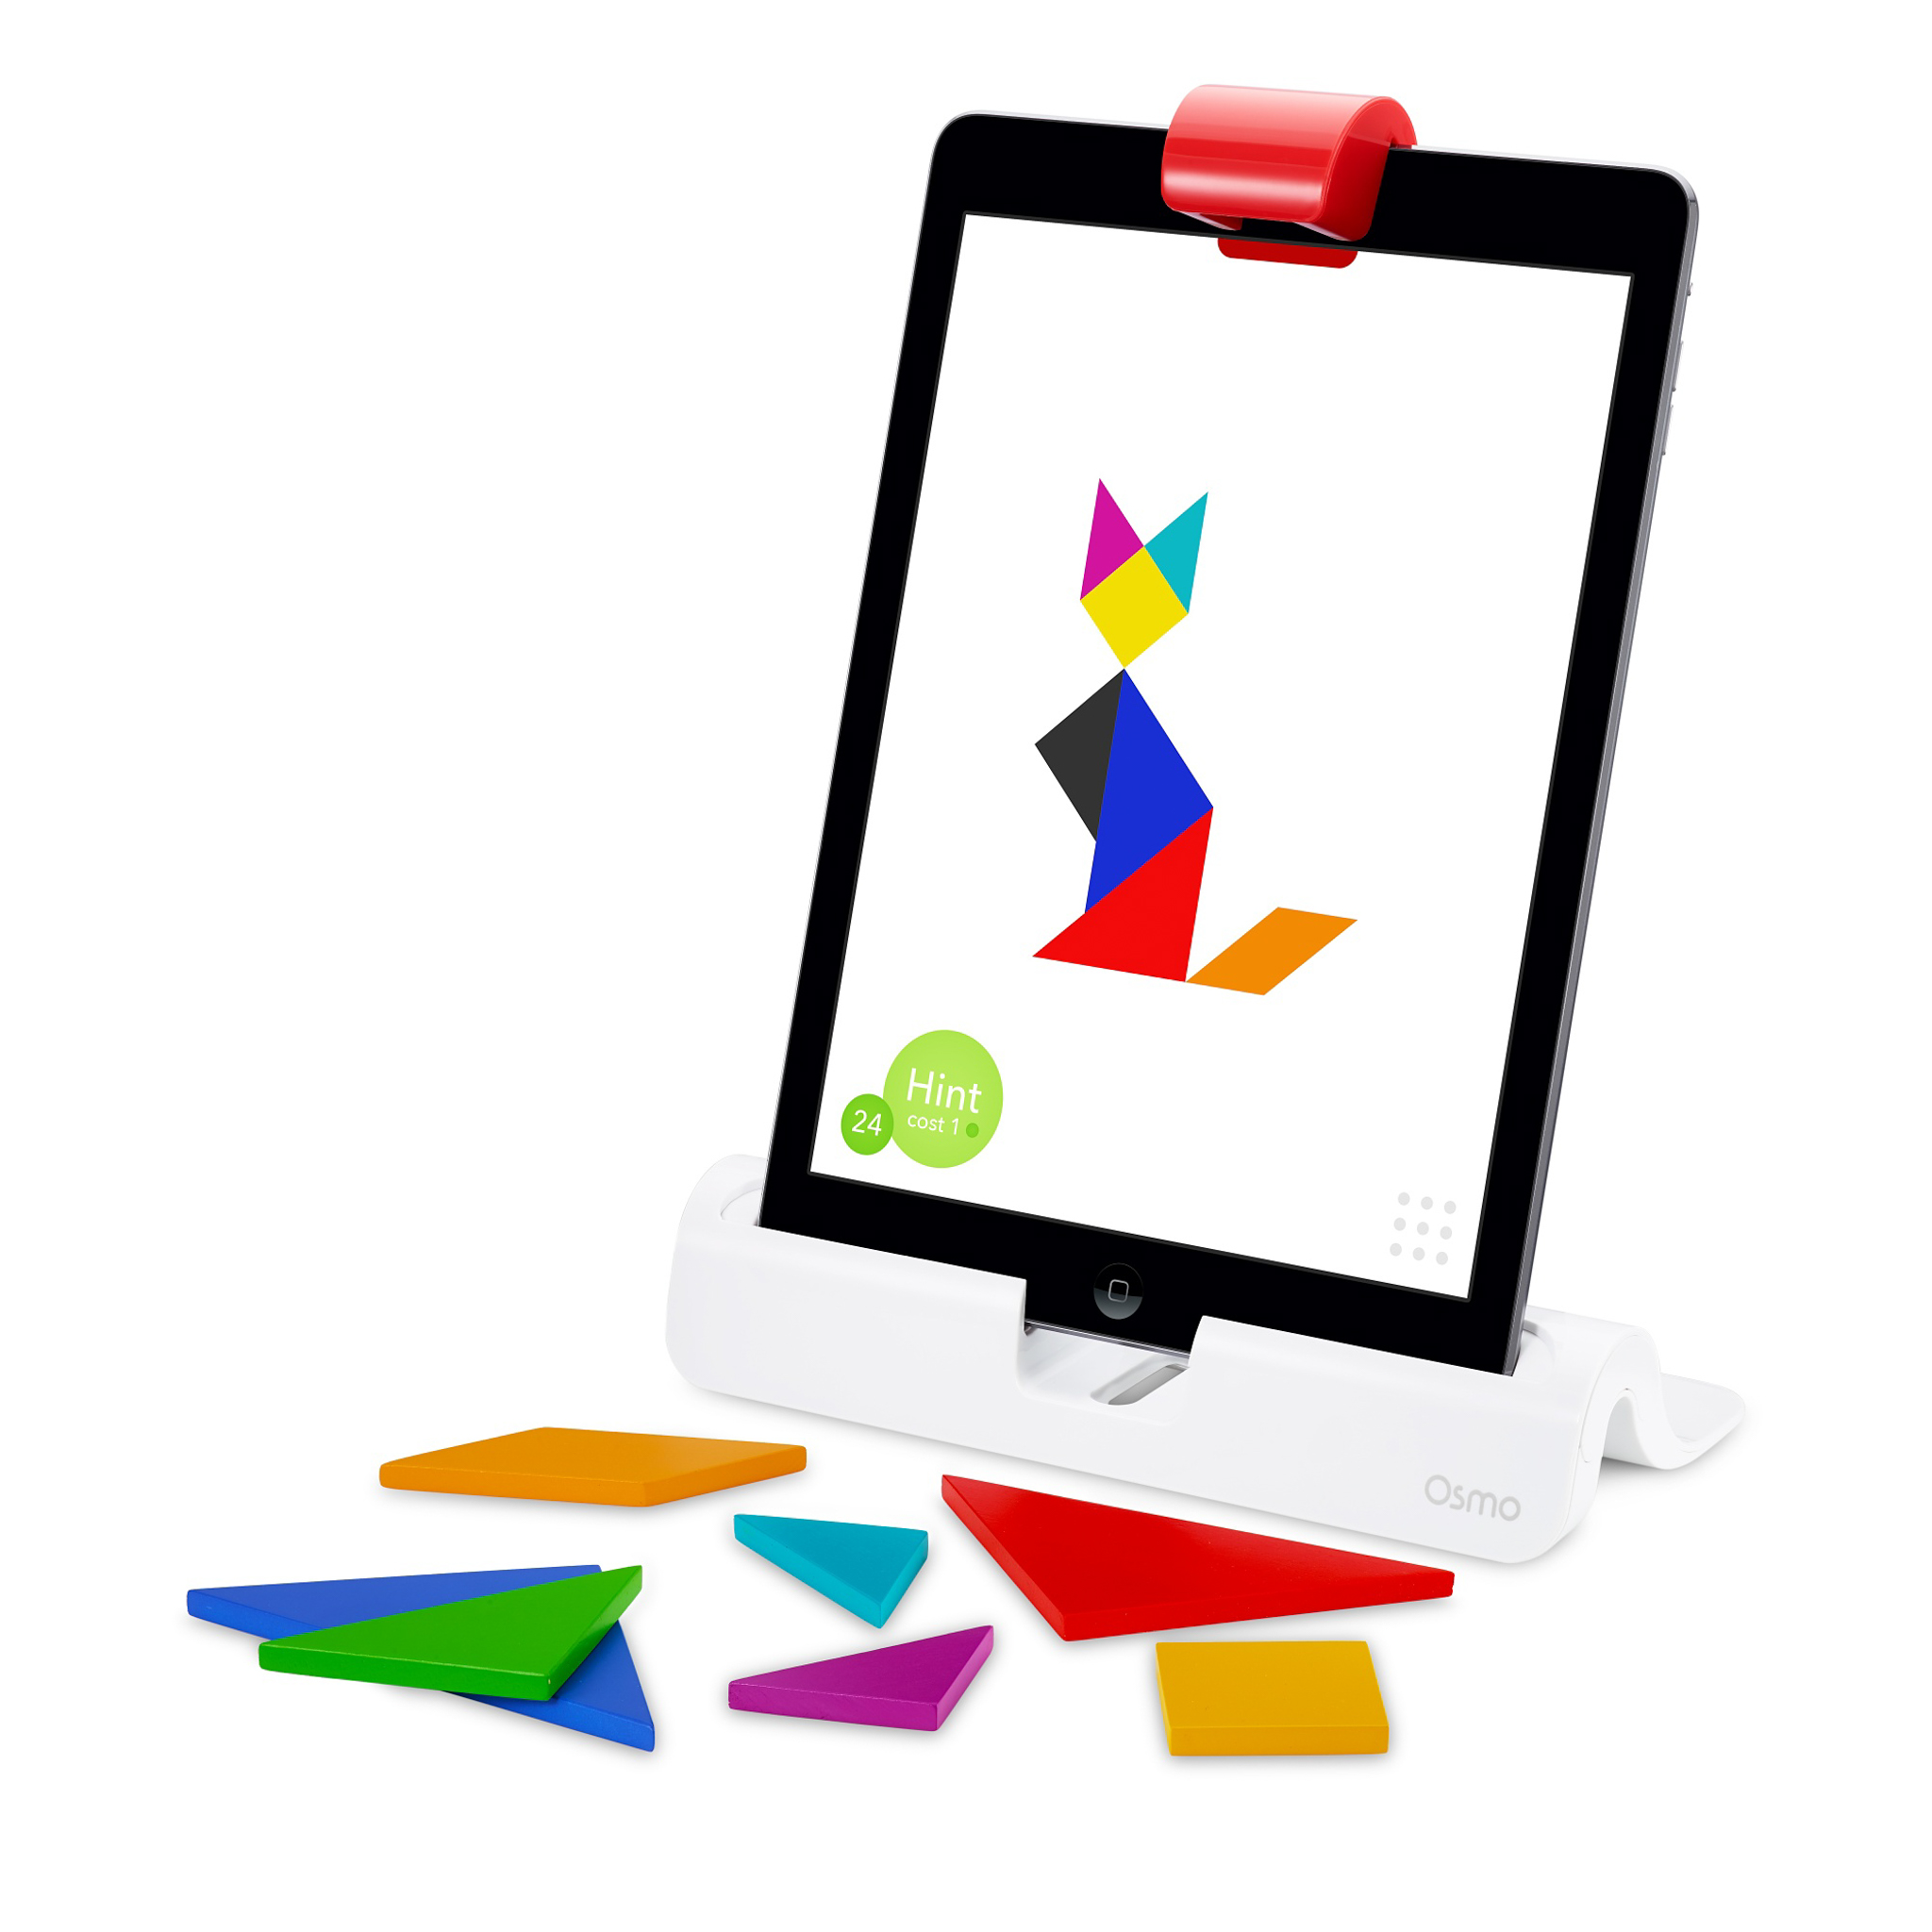 tangible-play-osmo-6